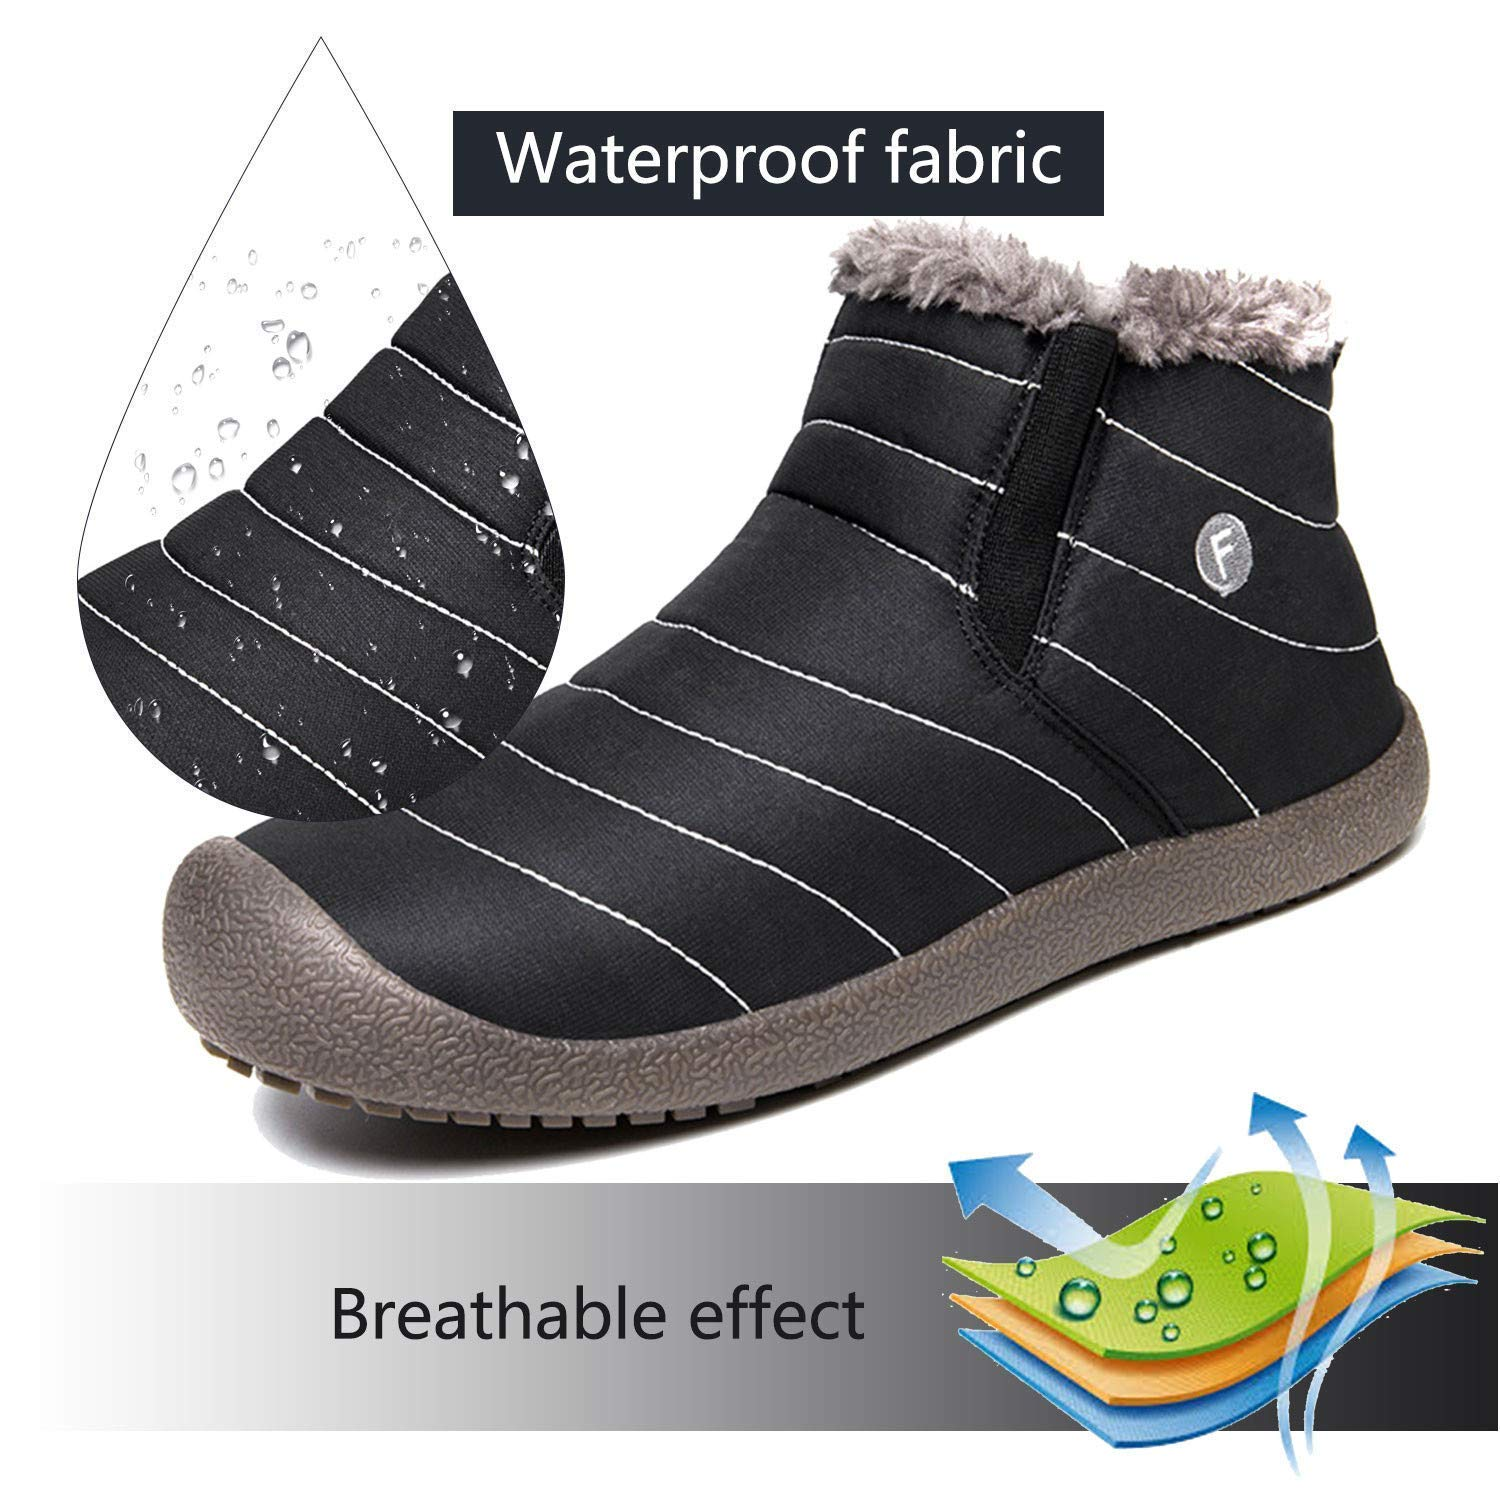 Men's Shoes Weweya New Men Winter Shoes Unisex Waterproof Snow Boots Plush Inside Keep Warm Ankle Boots Couple Sneakers Ski Boots Size 48 Always Buy Good